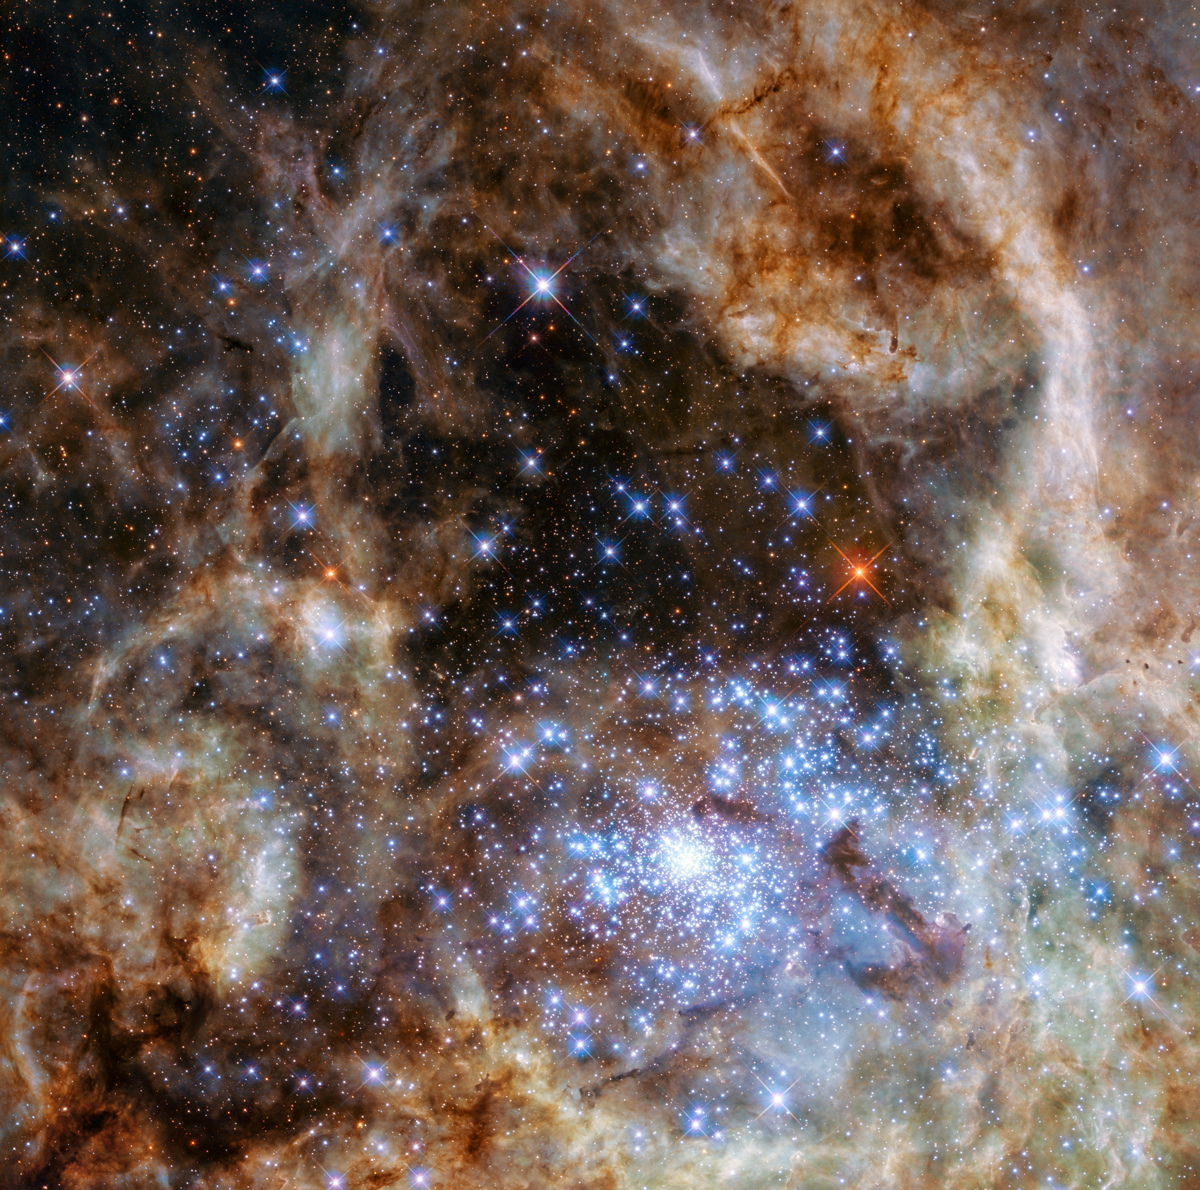 Mon-Stars! Cluster of Massive Suns Spotted by Hubble Telescope (Photo)